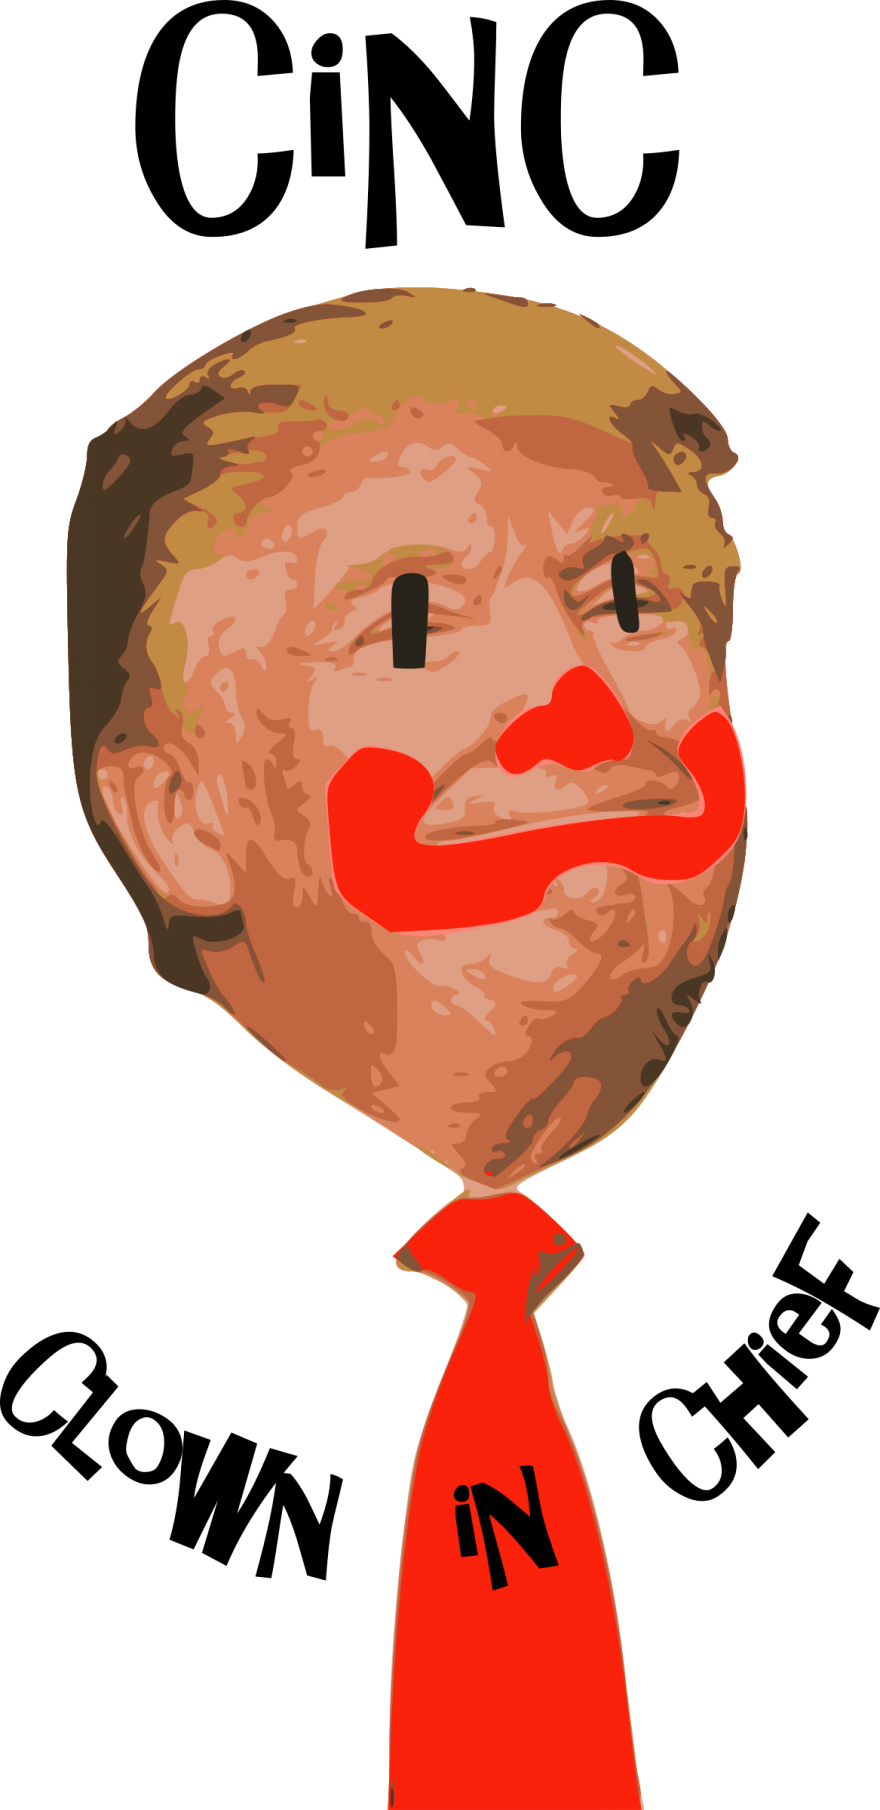 880x1810 Clown In Chief, Donald Trump Face Vector Clipart Clown In Chief